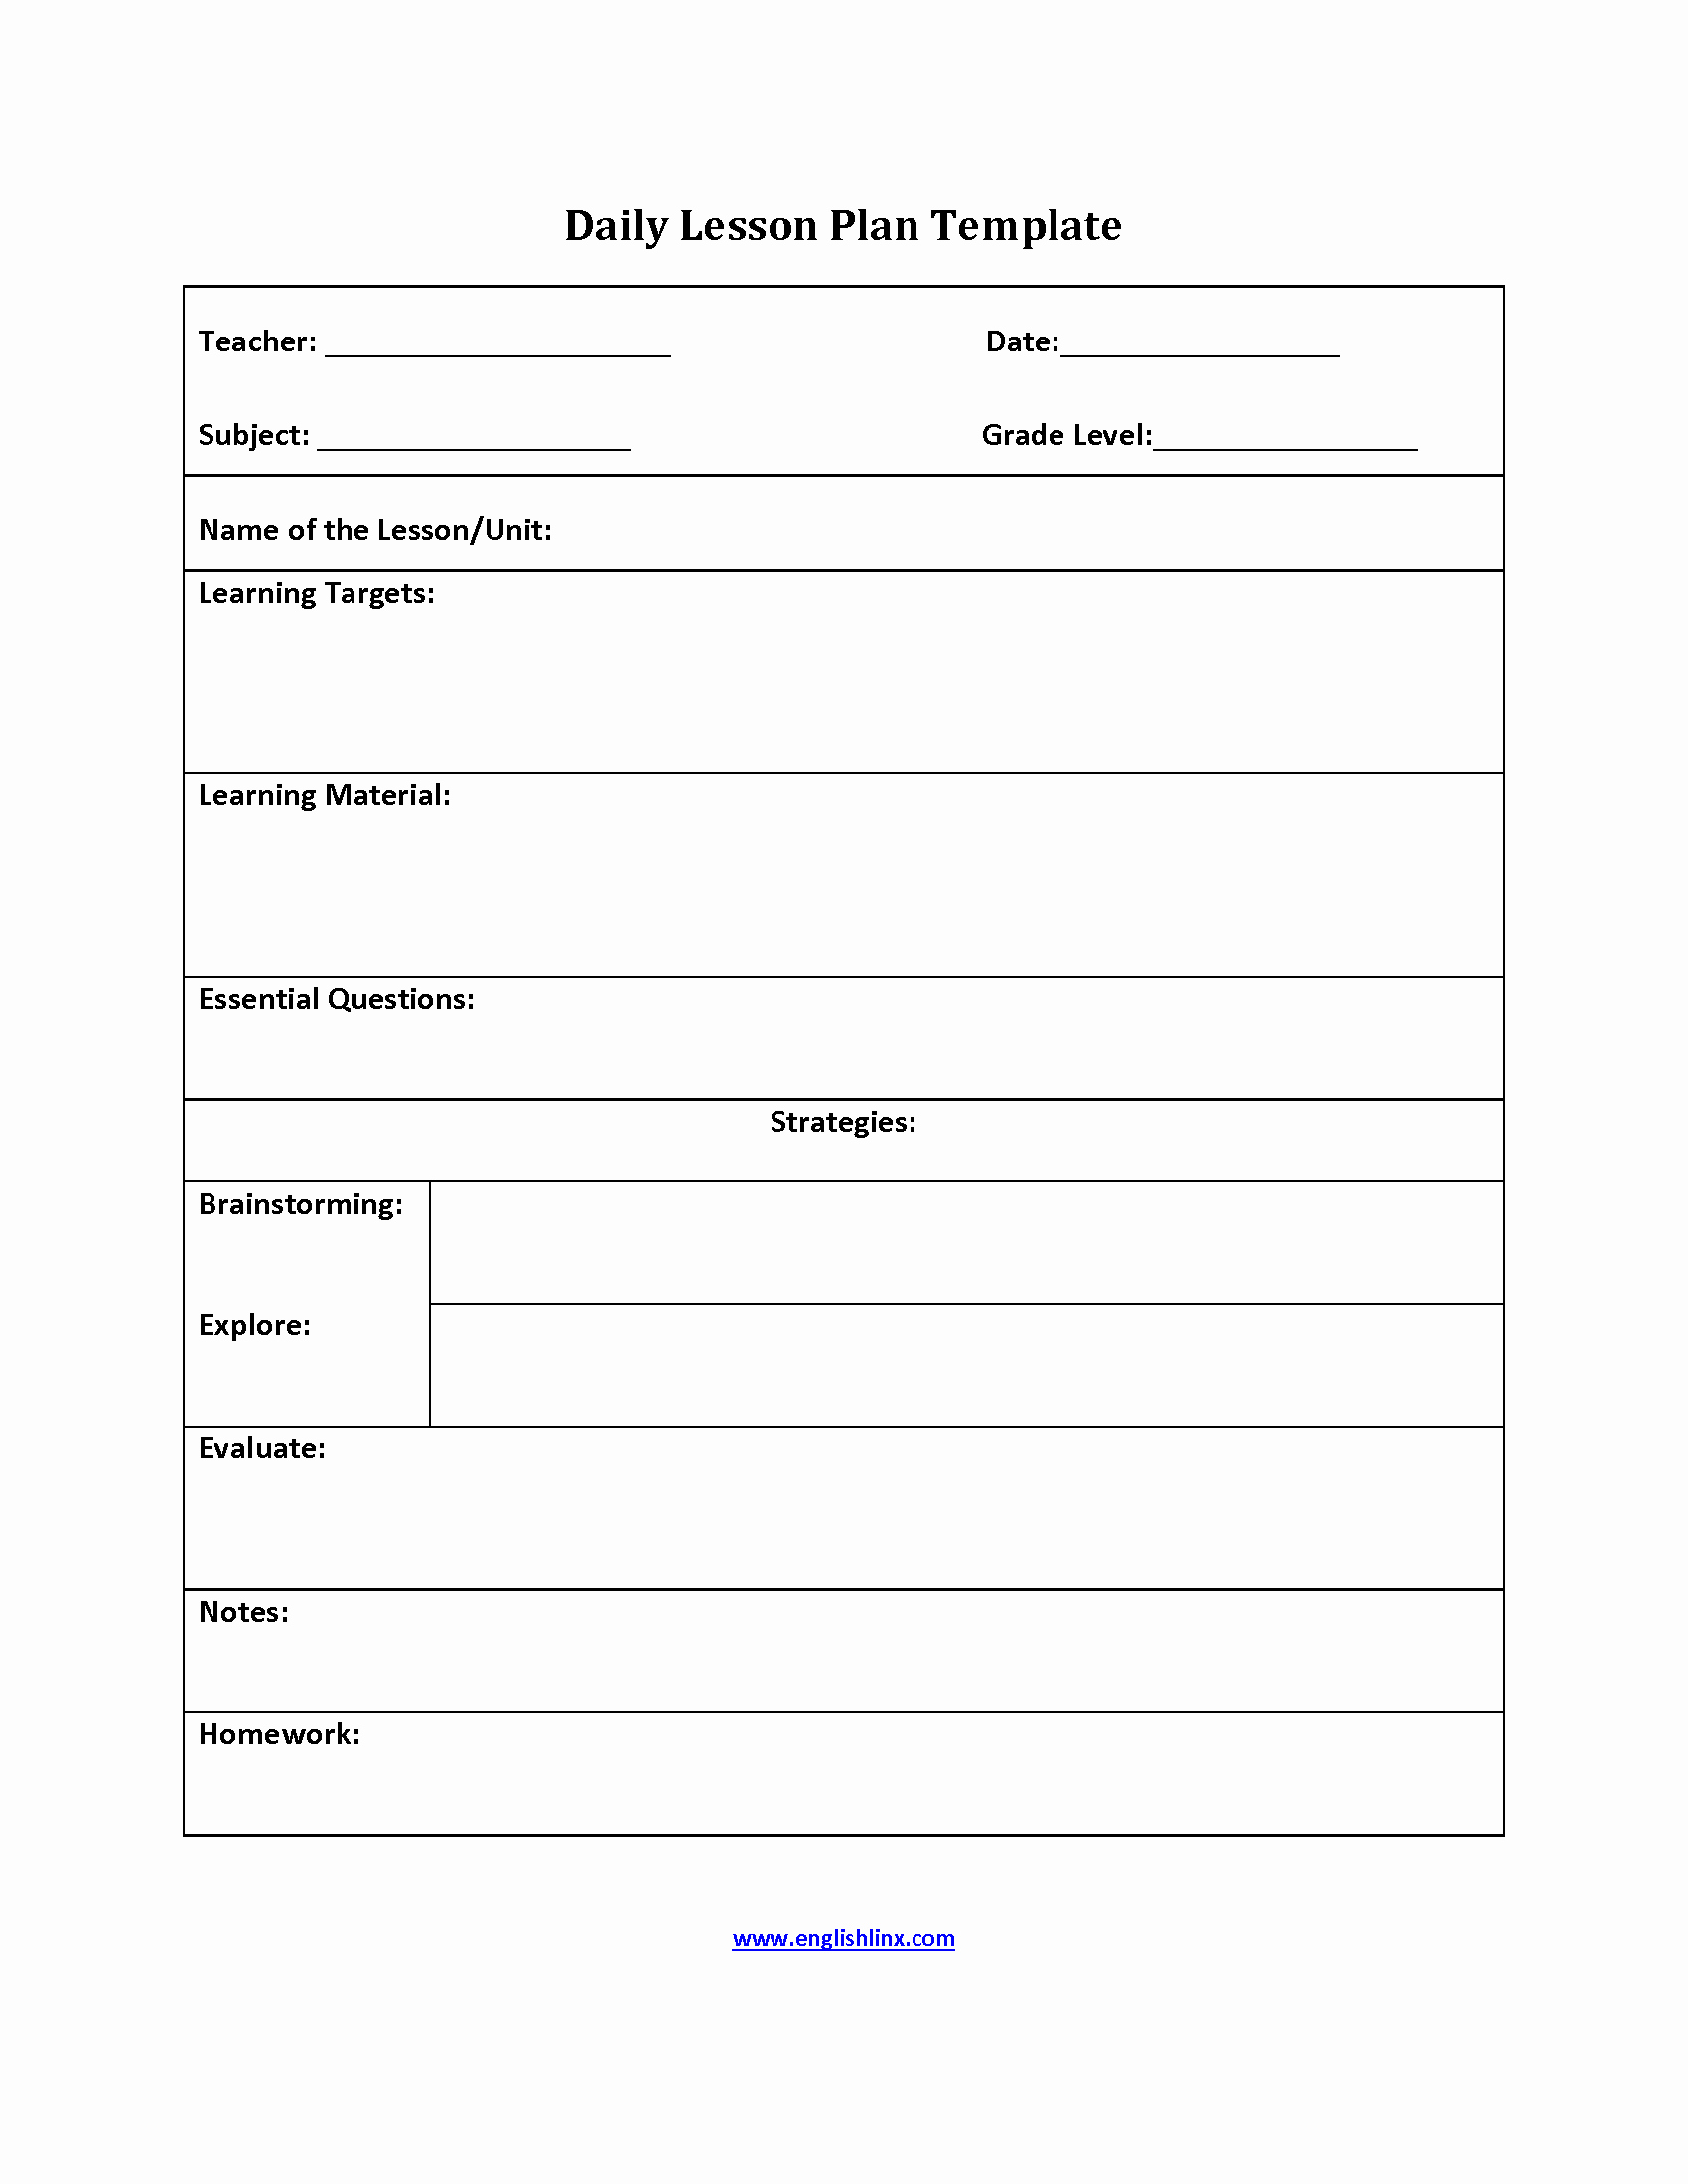 Weekly Lesson Plan Templates Elementary Best Of Simple Lesson Plan Template for Teachers – Simple Lesson